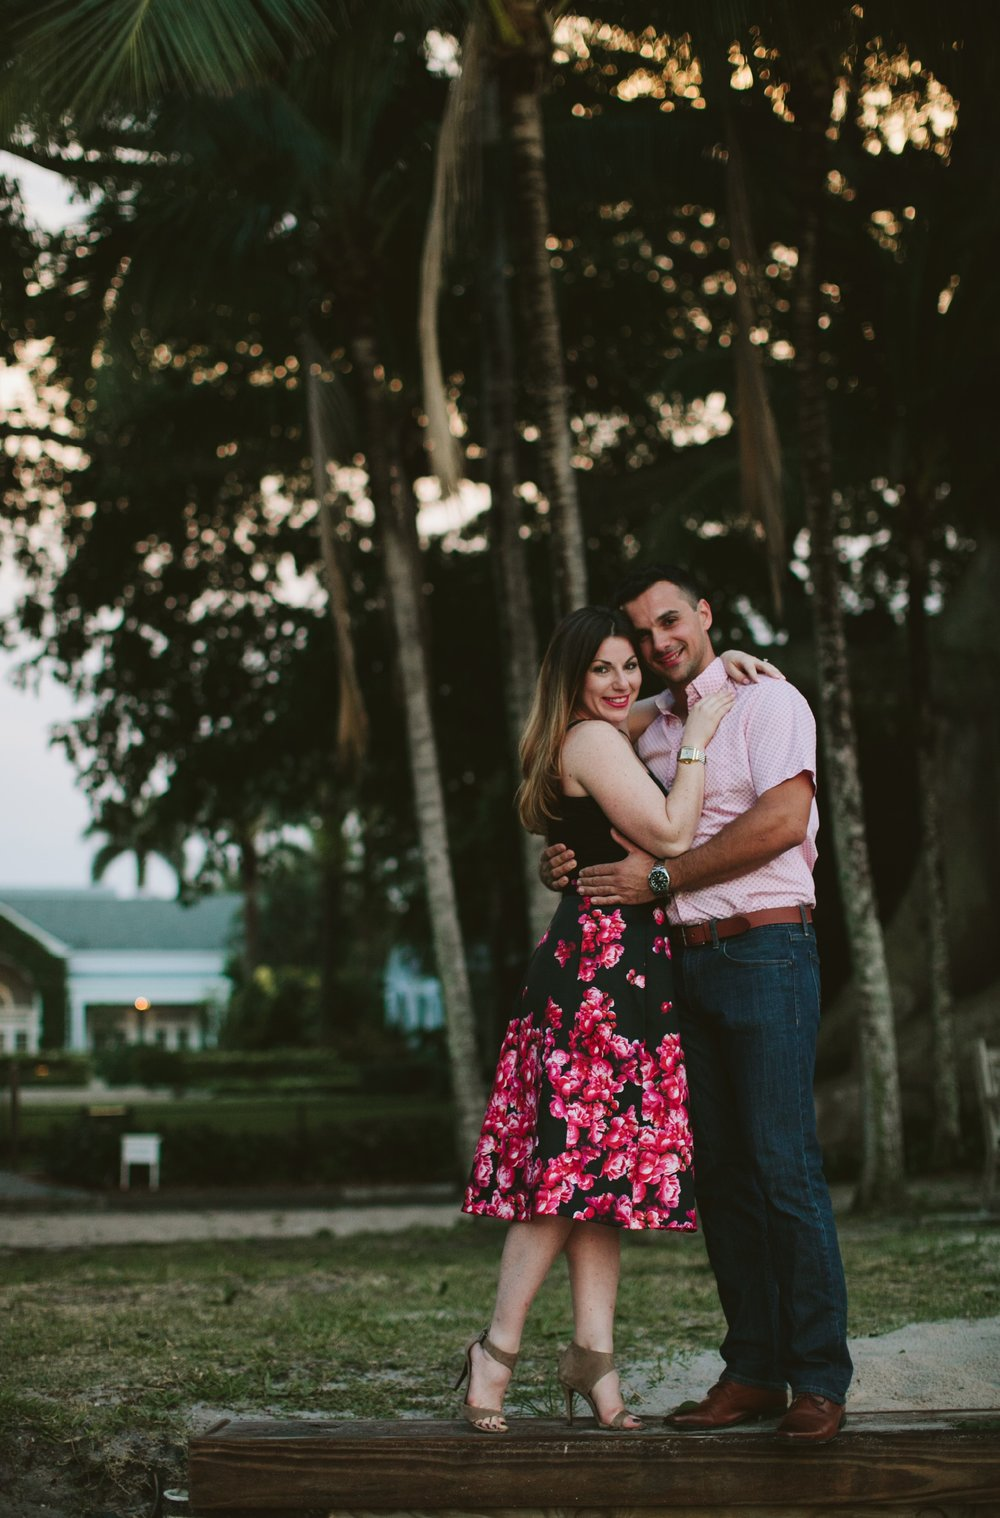 Ida + Danny Surprise Proposal Engagement Shoot at Flagler Museum Palm Beach6.jpg